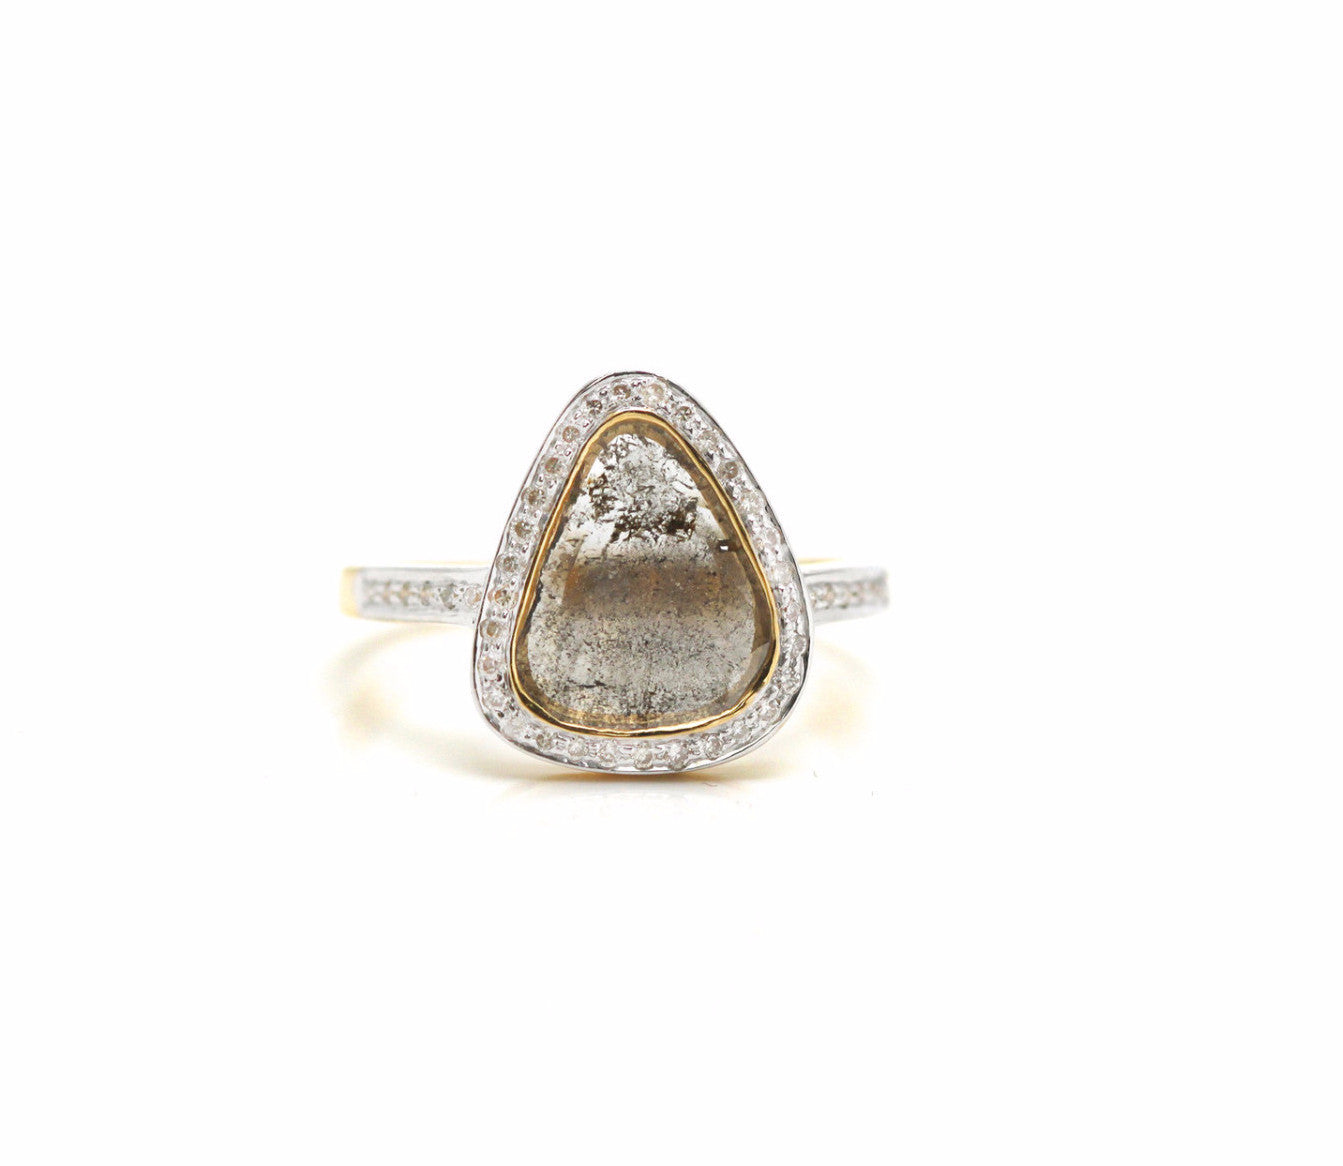 Organic diamond slice with round brilliant diamond ring in 18k YG